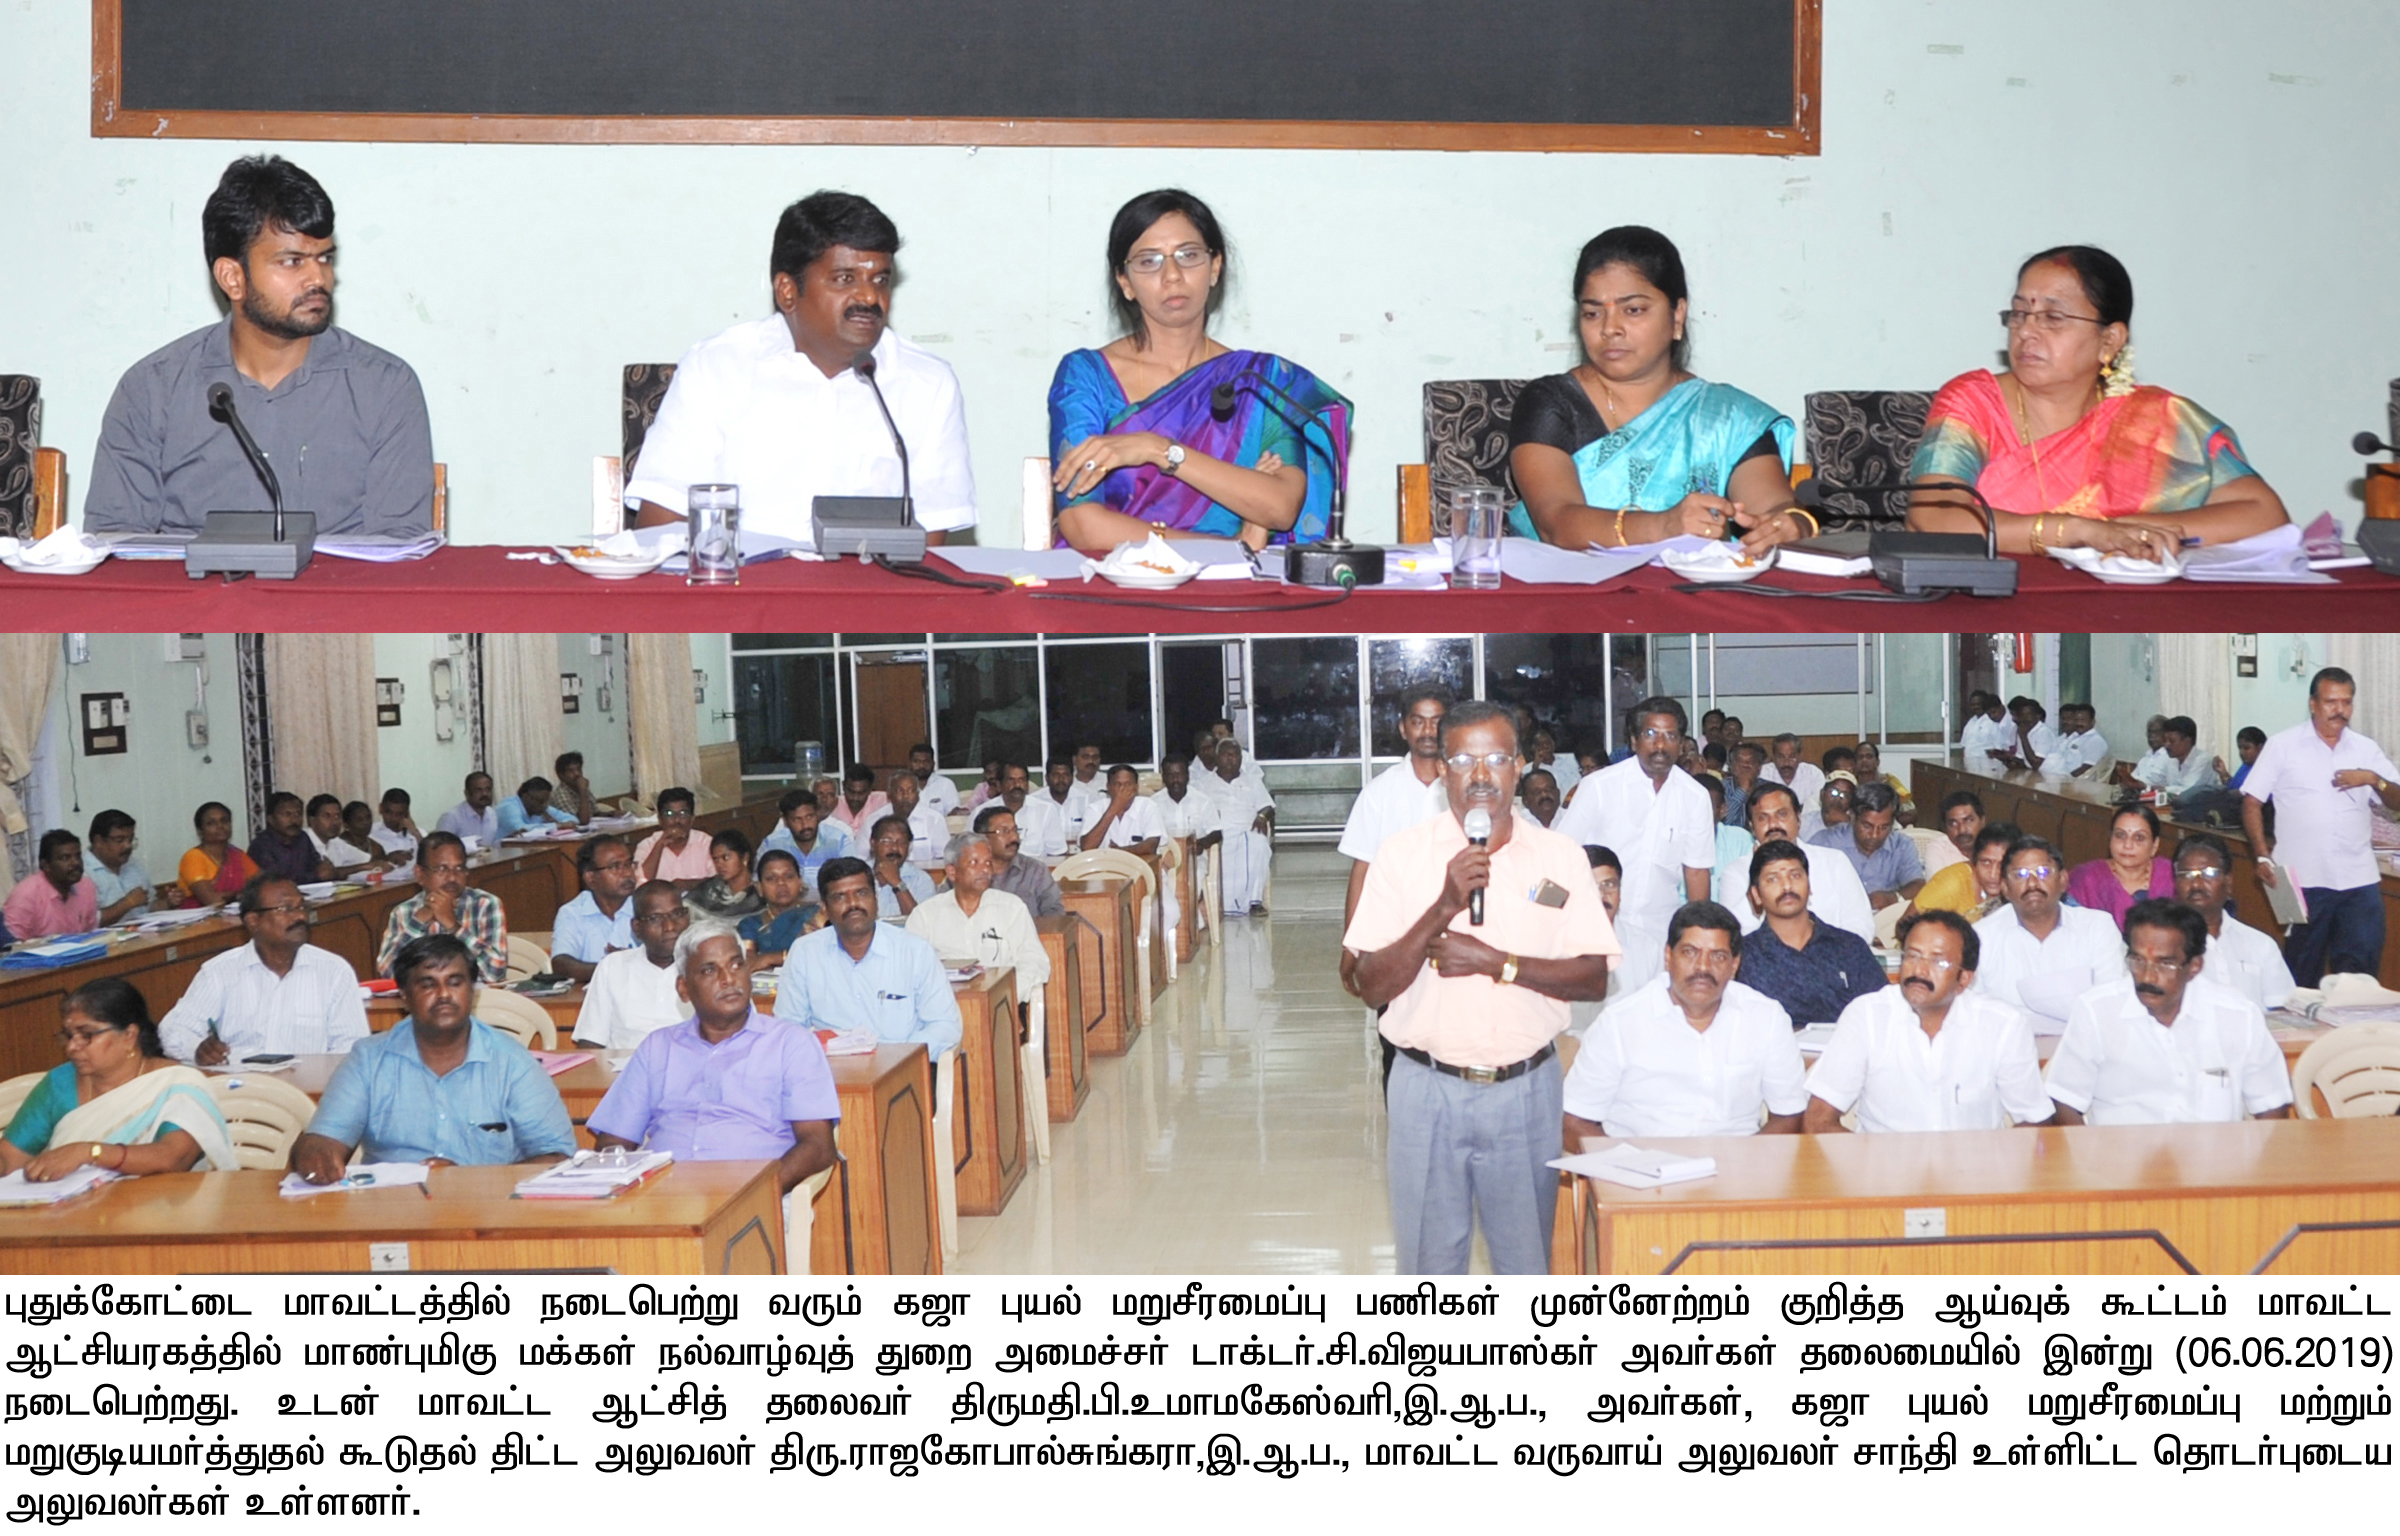 06.06.2019 Health Minister Metting Photo 01.